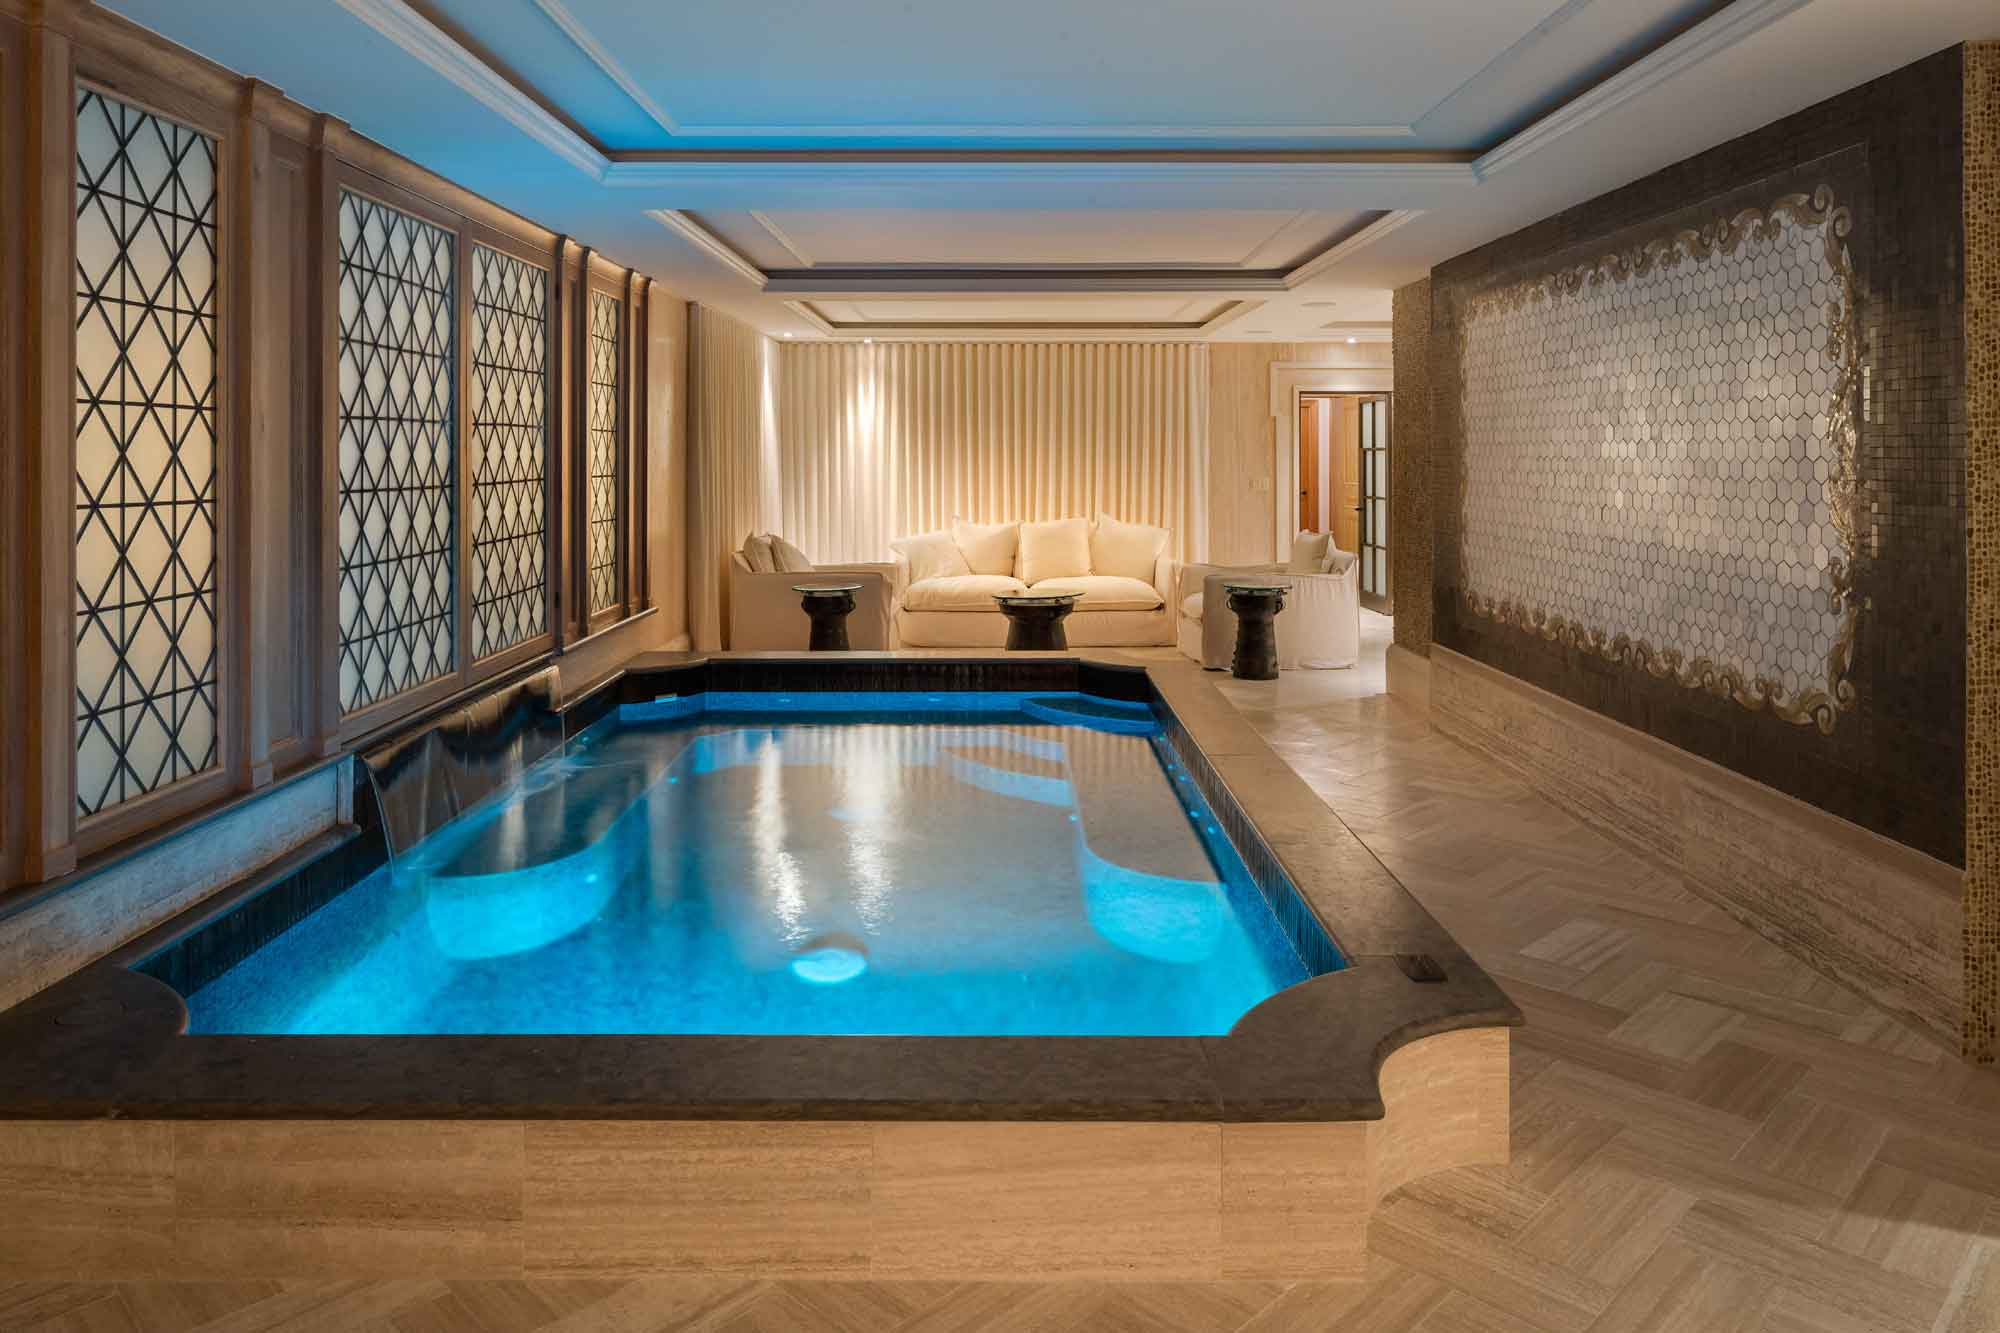 The original circa-1907 mansion was expanded by an additional 12,000 square feet to bring it into the 21st century. One of the mansion's spectacular new amenities is the luxury spa with indoor pool, steam and sauna, massage rooms, and beauty salon.